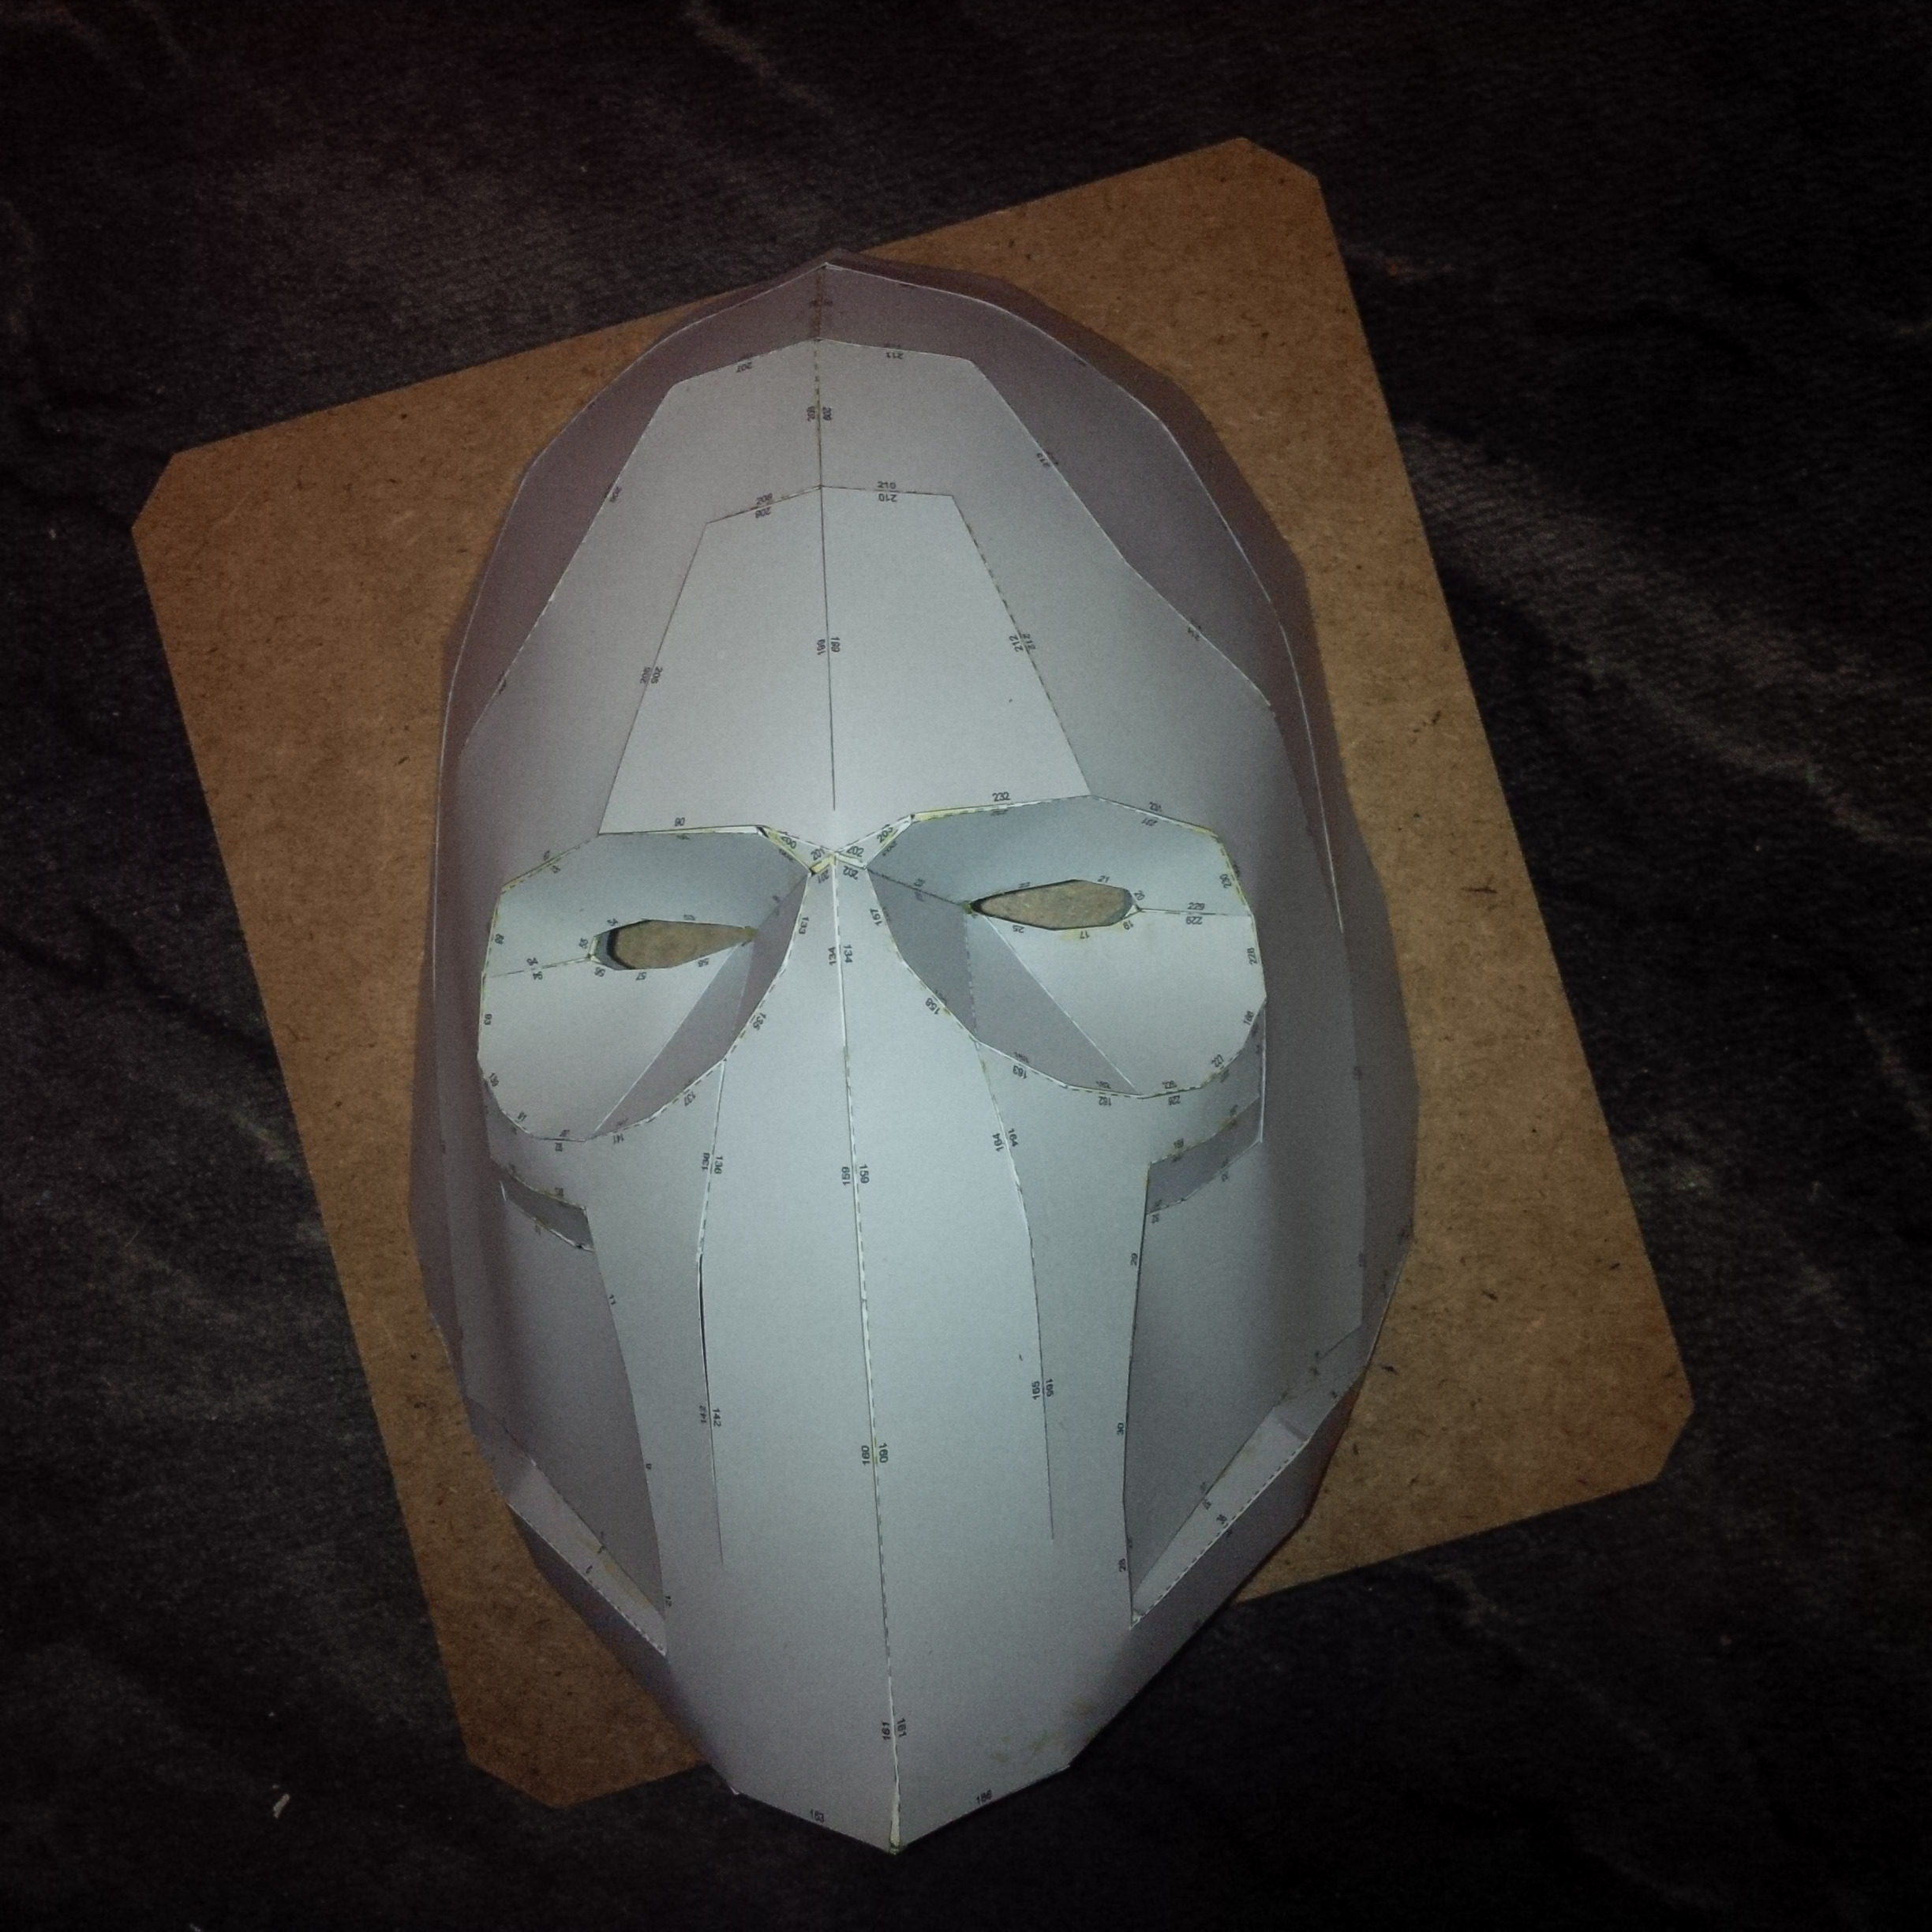 Pepakura army of two mask by gezjenk on deviantart pepakura army of two mask by gezjenk voltagebd Image collections